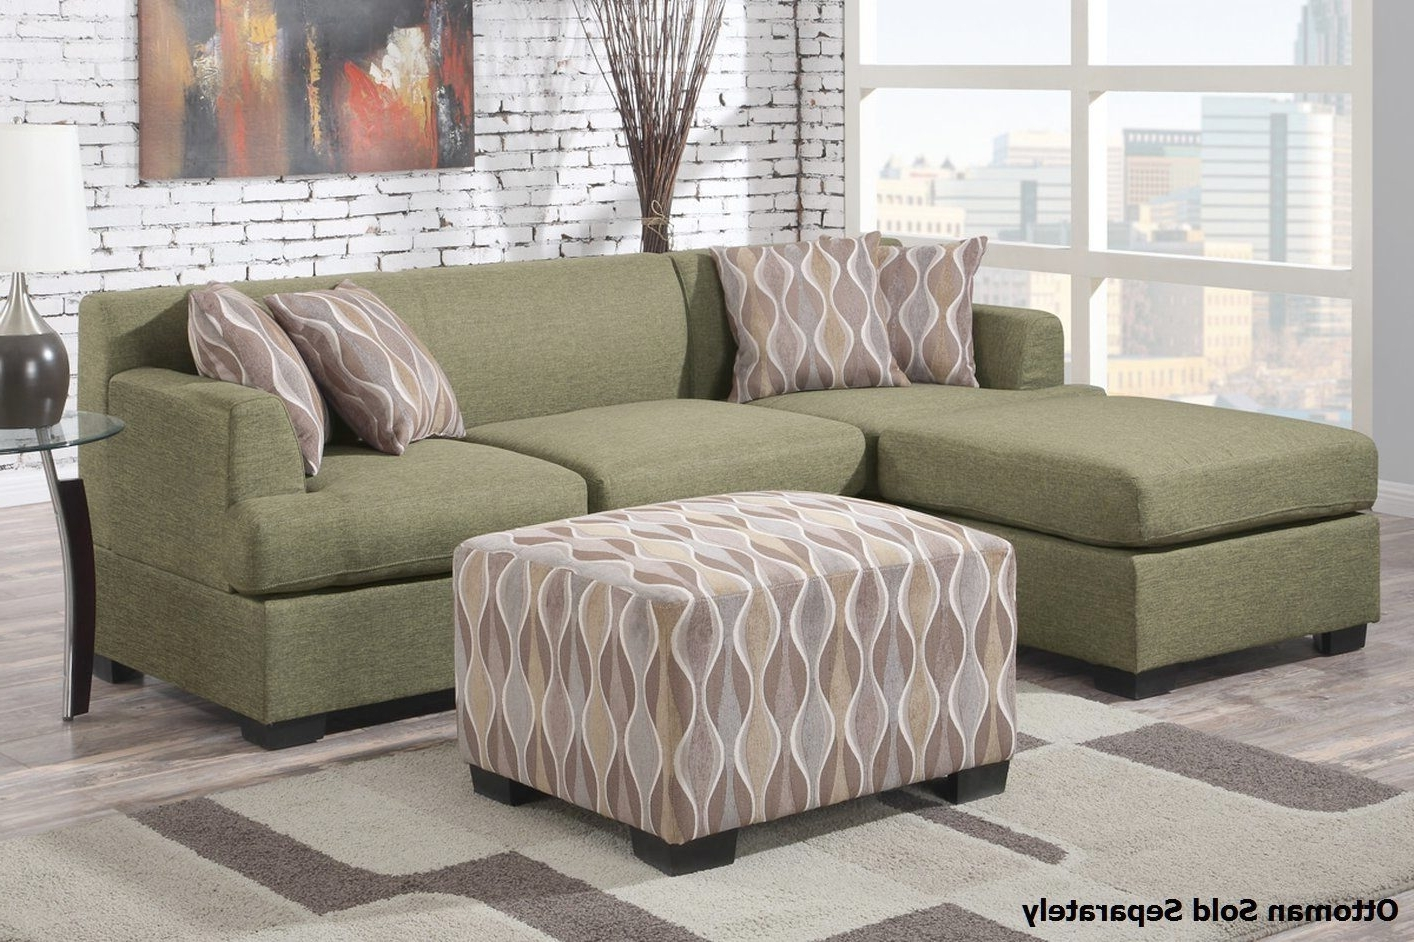 Best Fabric Sectional Sofa Great Ideas #3 Best Fabric Sectional In Well Known Fabric Sectional Sofas (View 4 of 20)